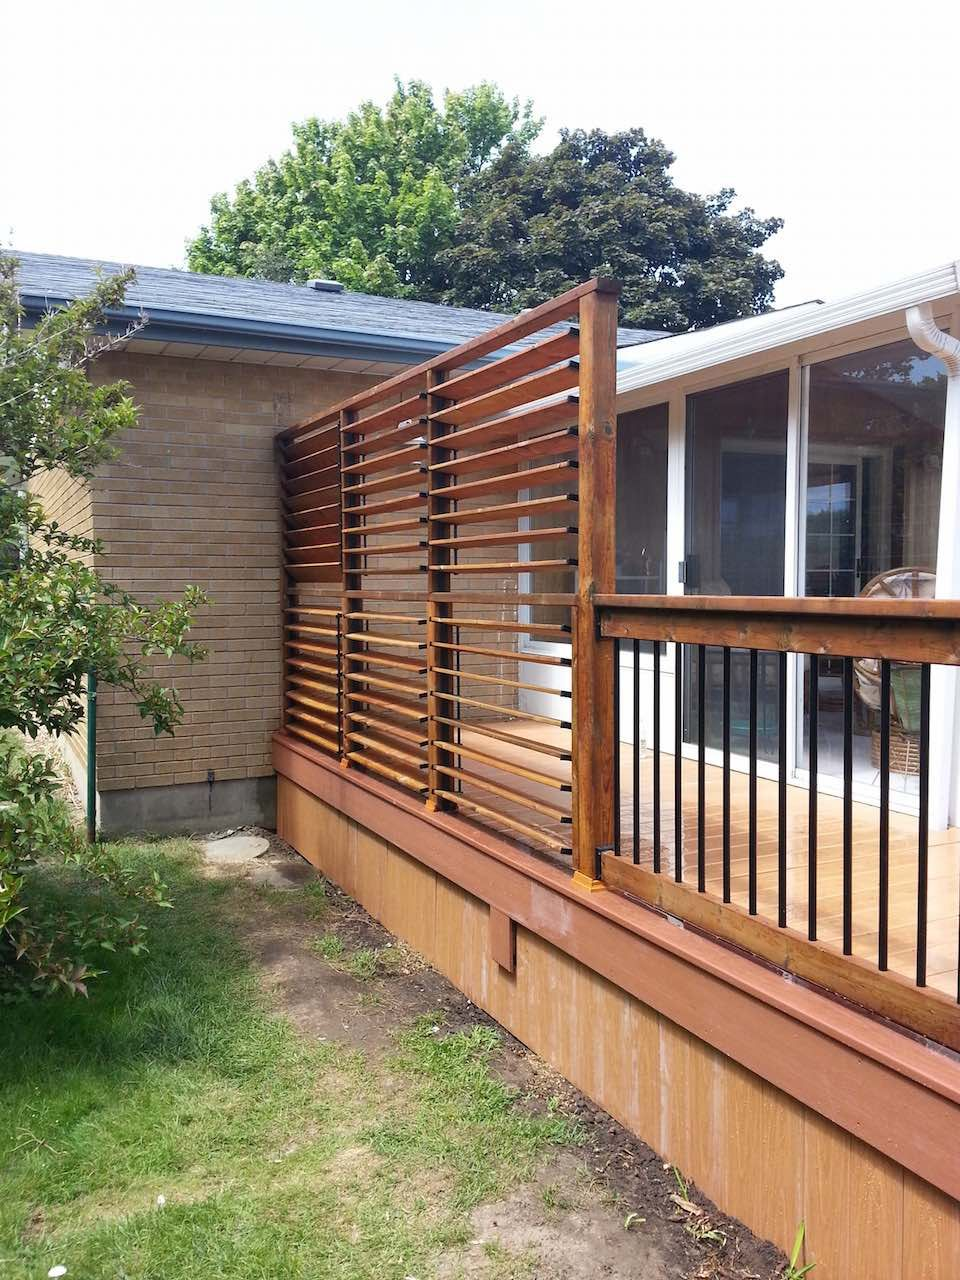 Backyard privacy screen louvers great solution by flex for Backyard patio privacy ideas